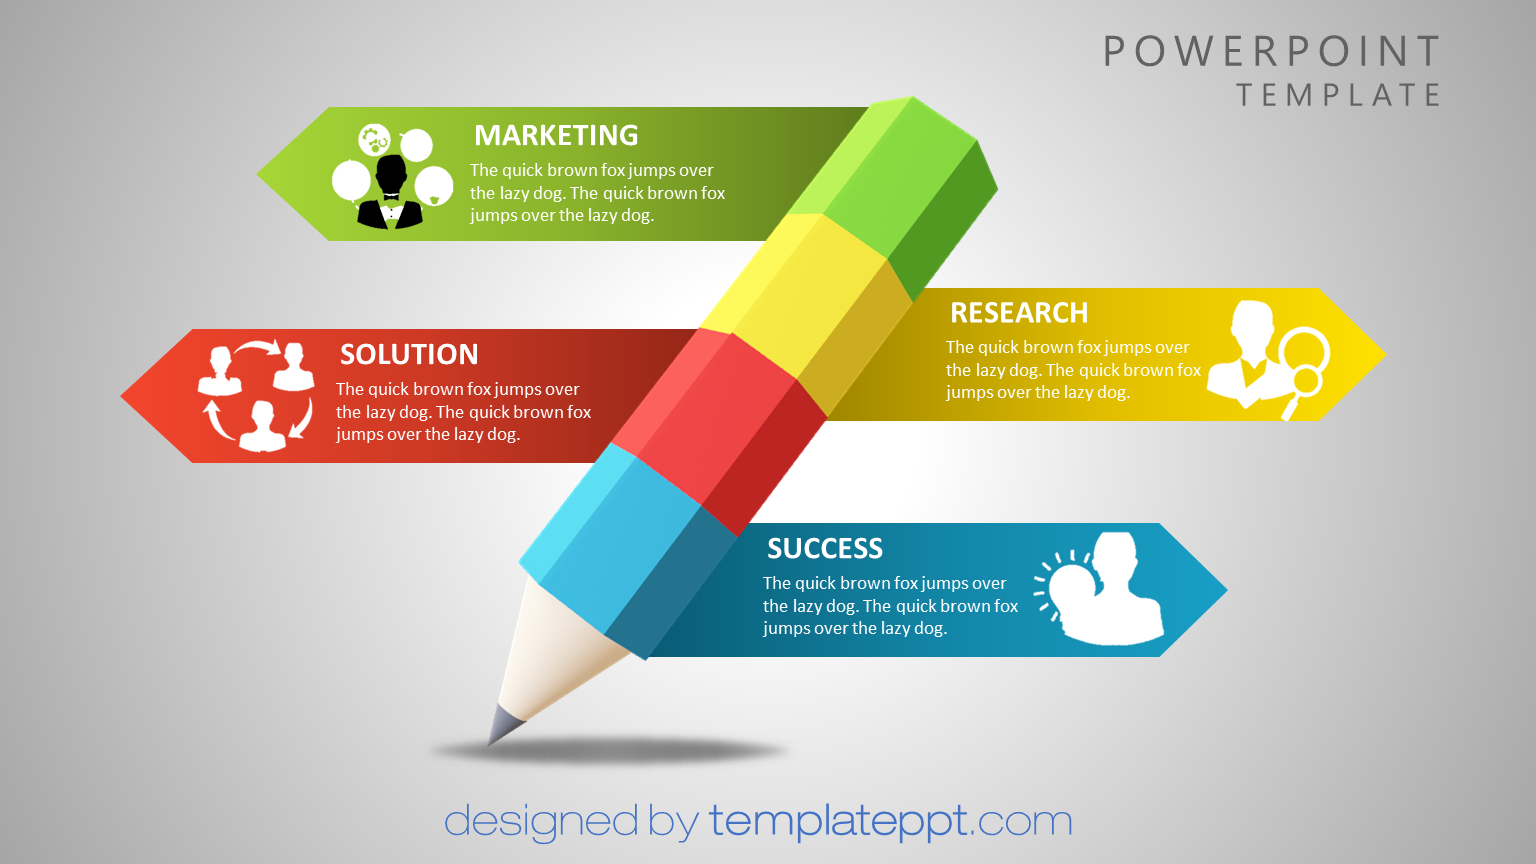 D Animated Powerpoint Templates Free Download Using Paint D And Throughout Powerpoint Sample Templates Free Download